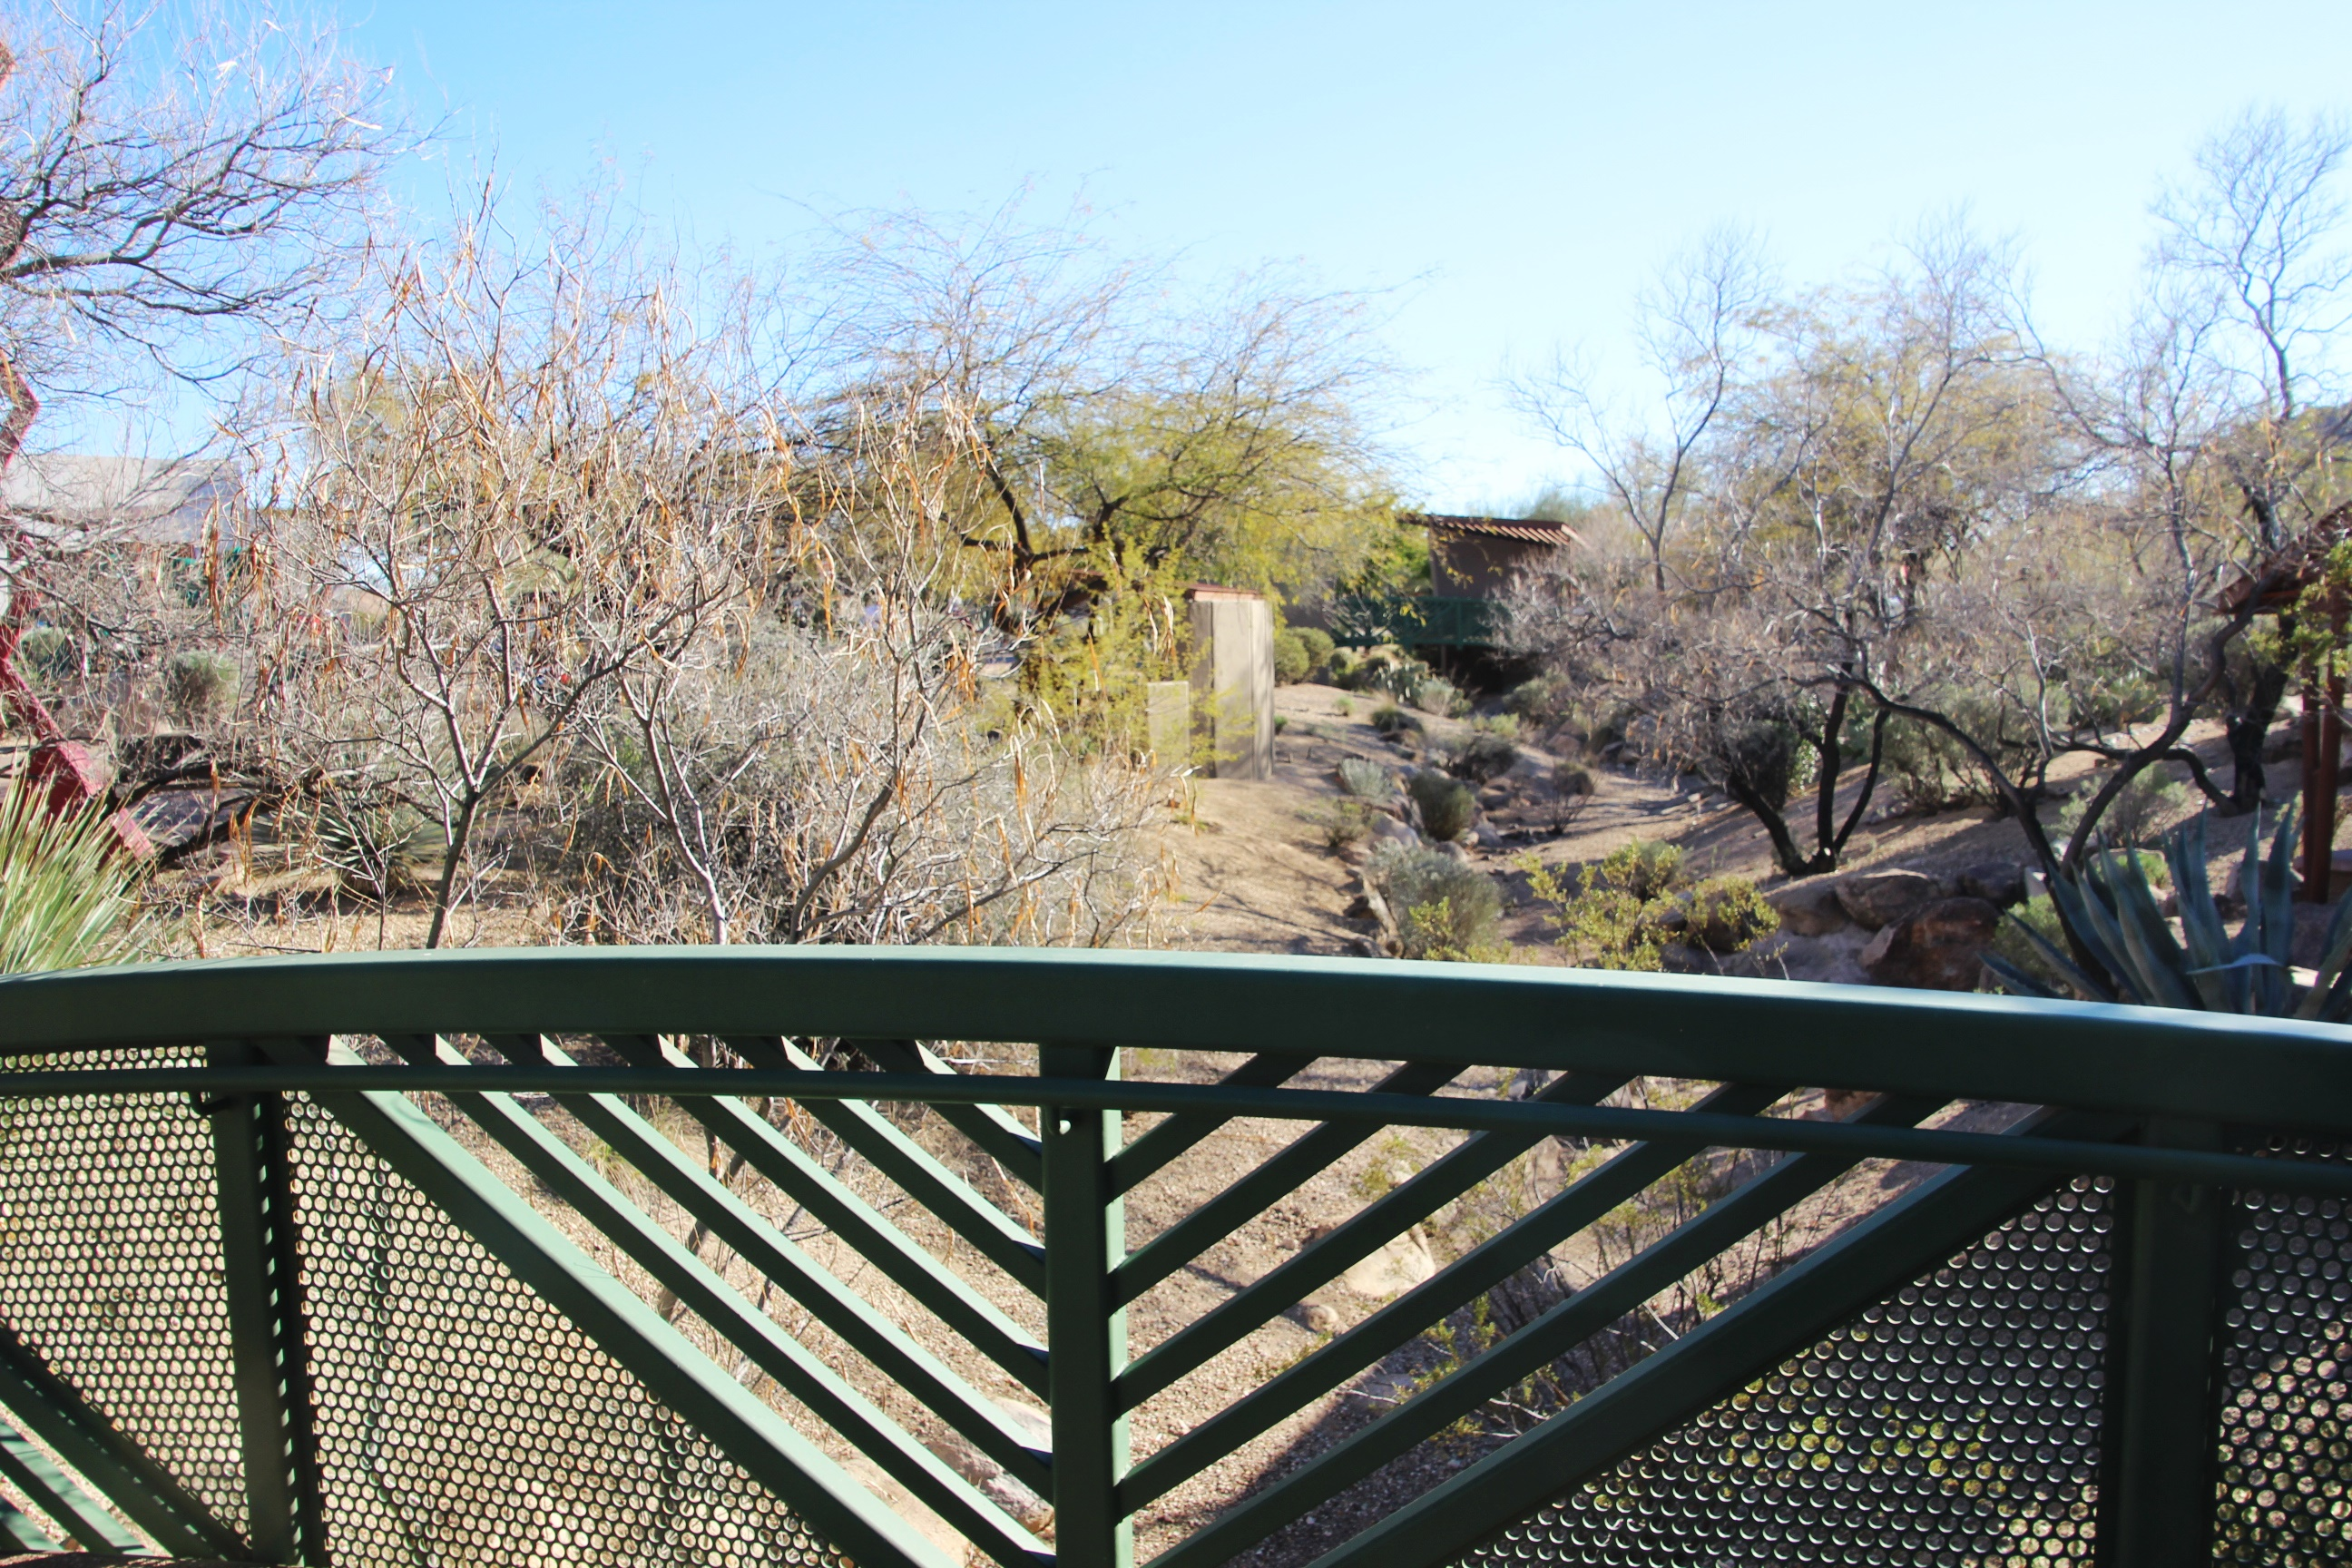 view from the bridge at the desert gardens